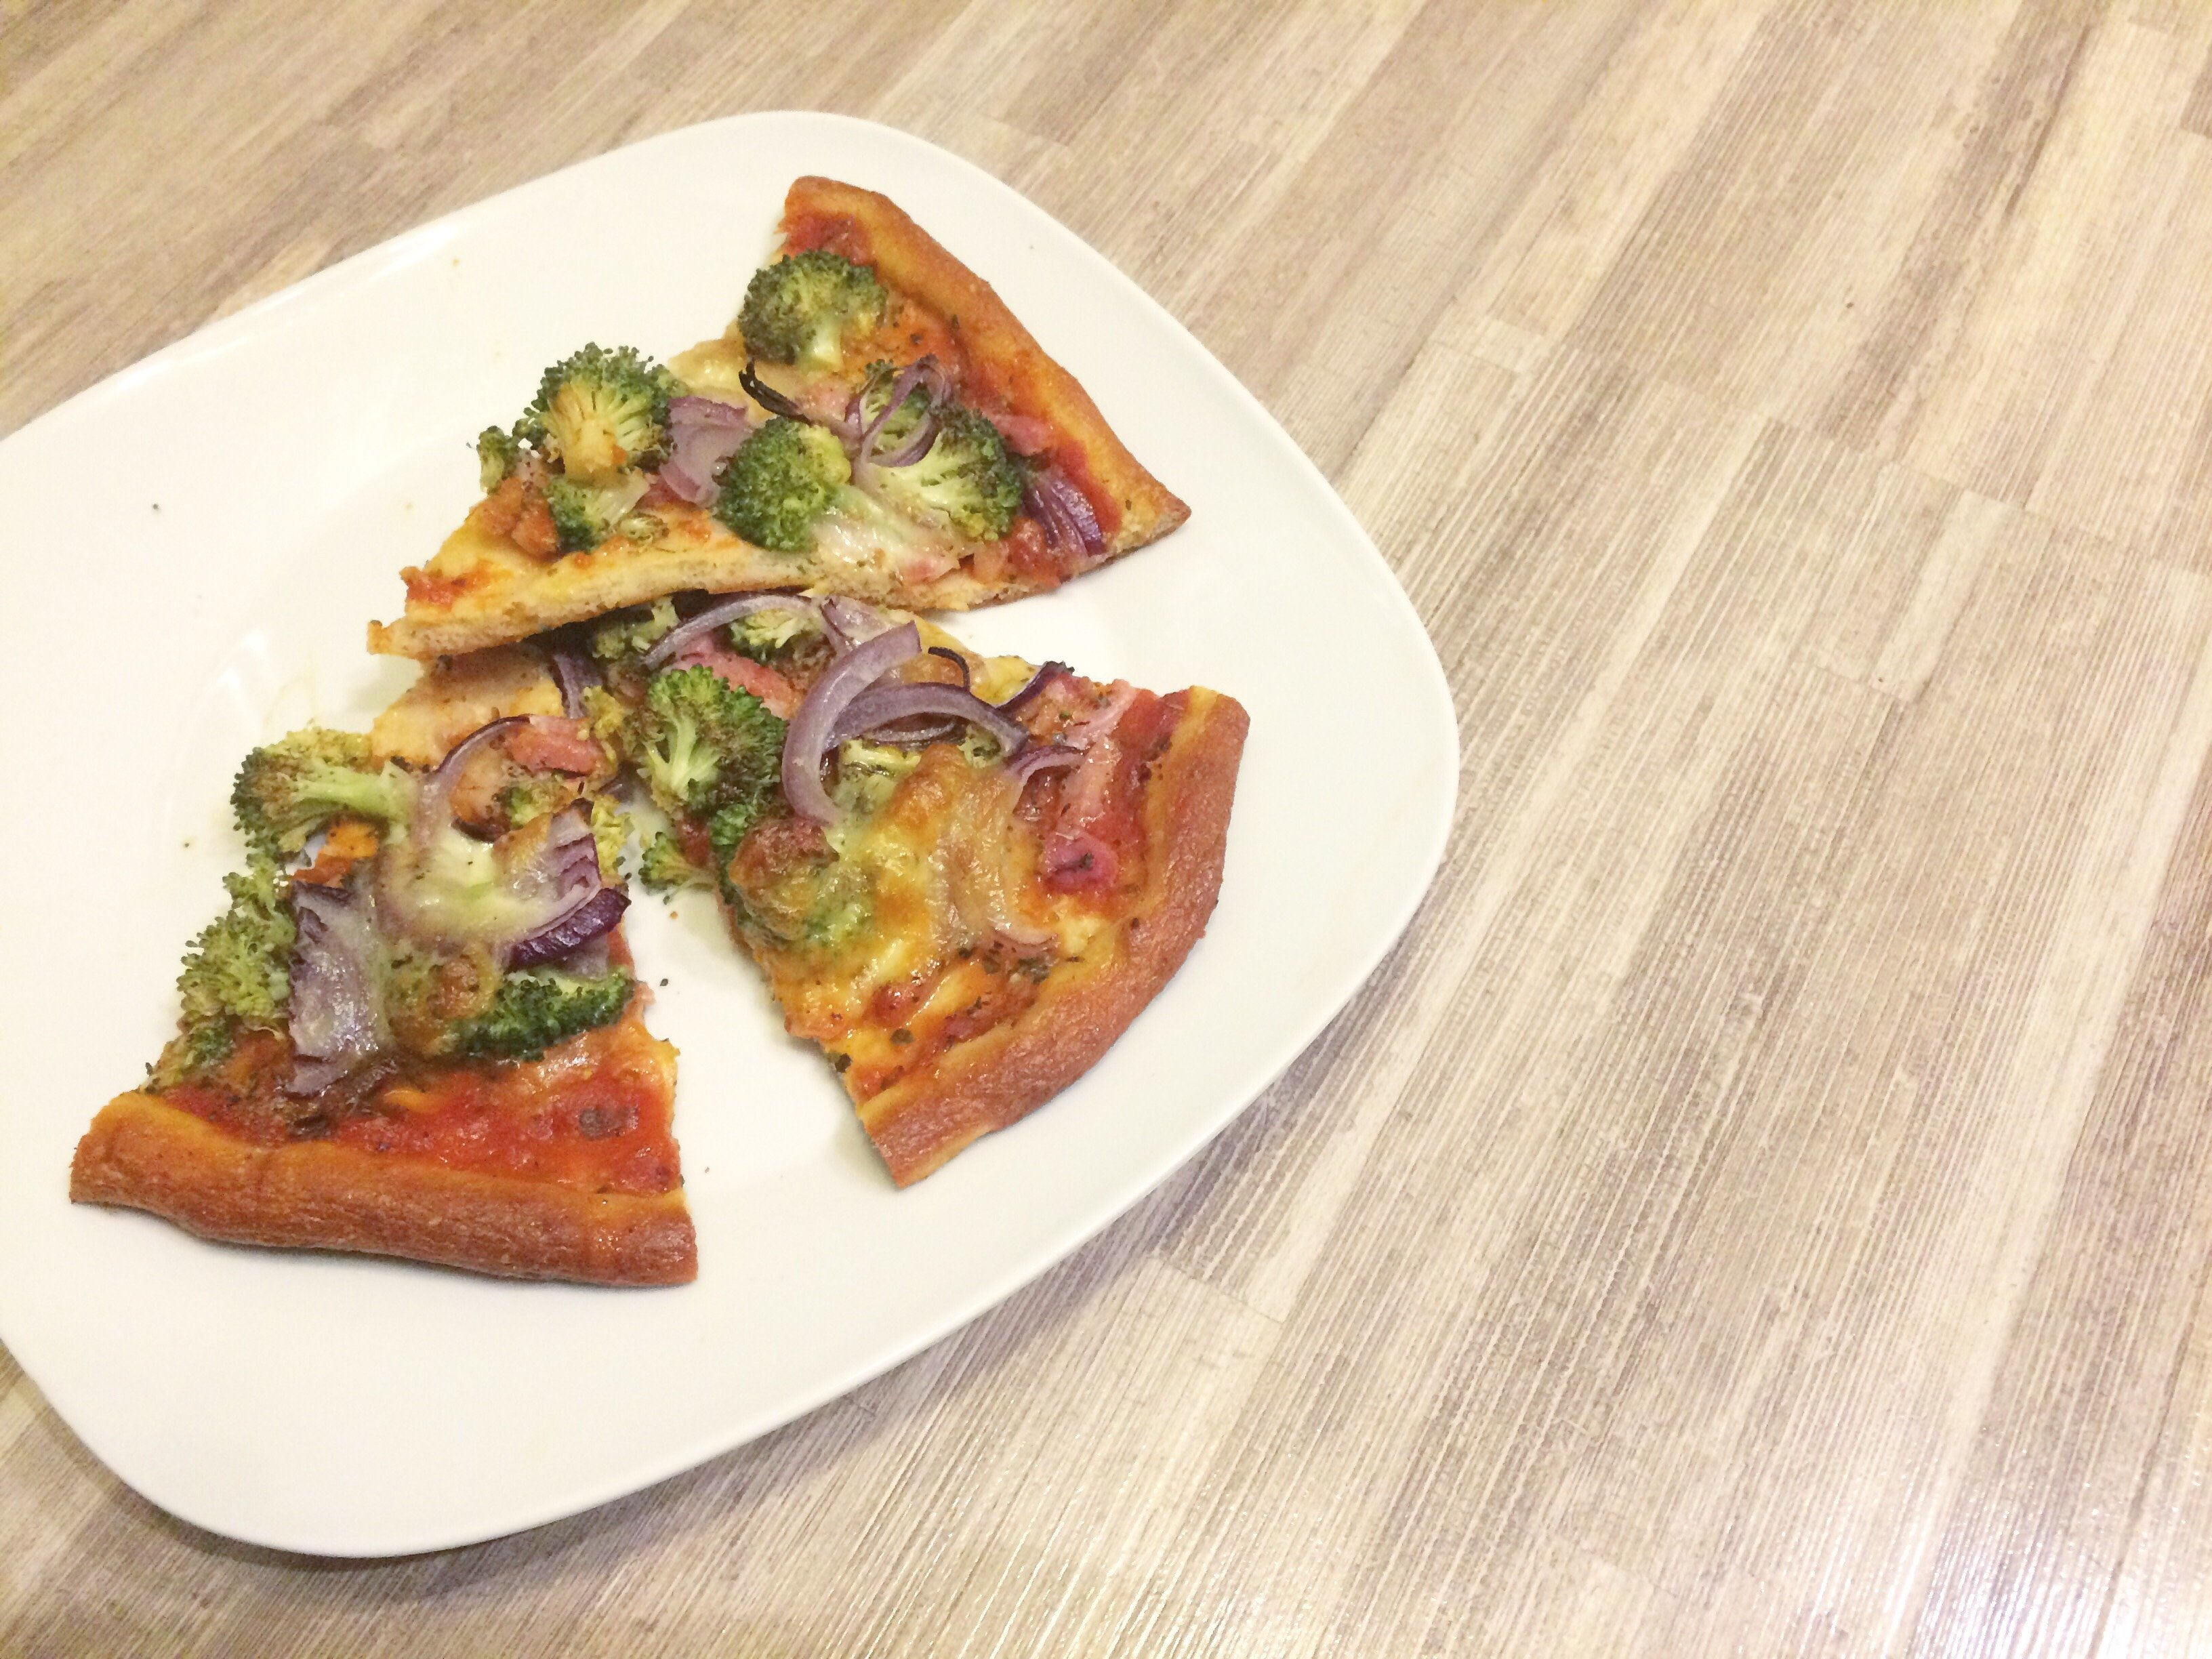 Lowcarb broccoli pizza